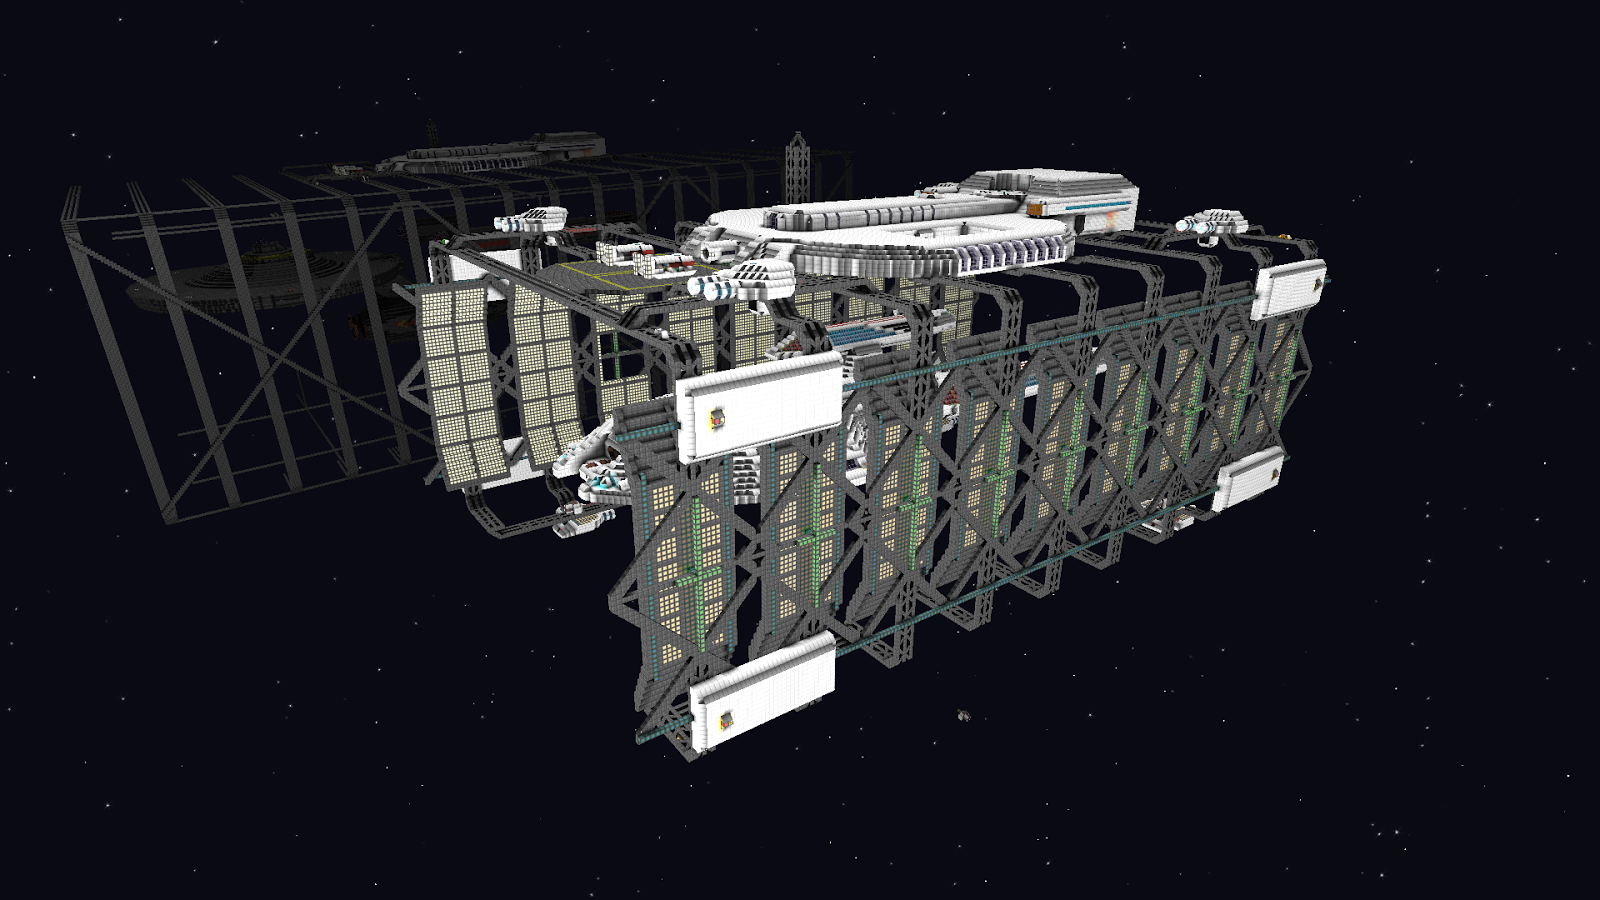 space ship on starmade - photo #36